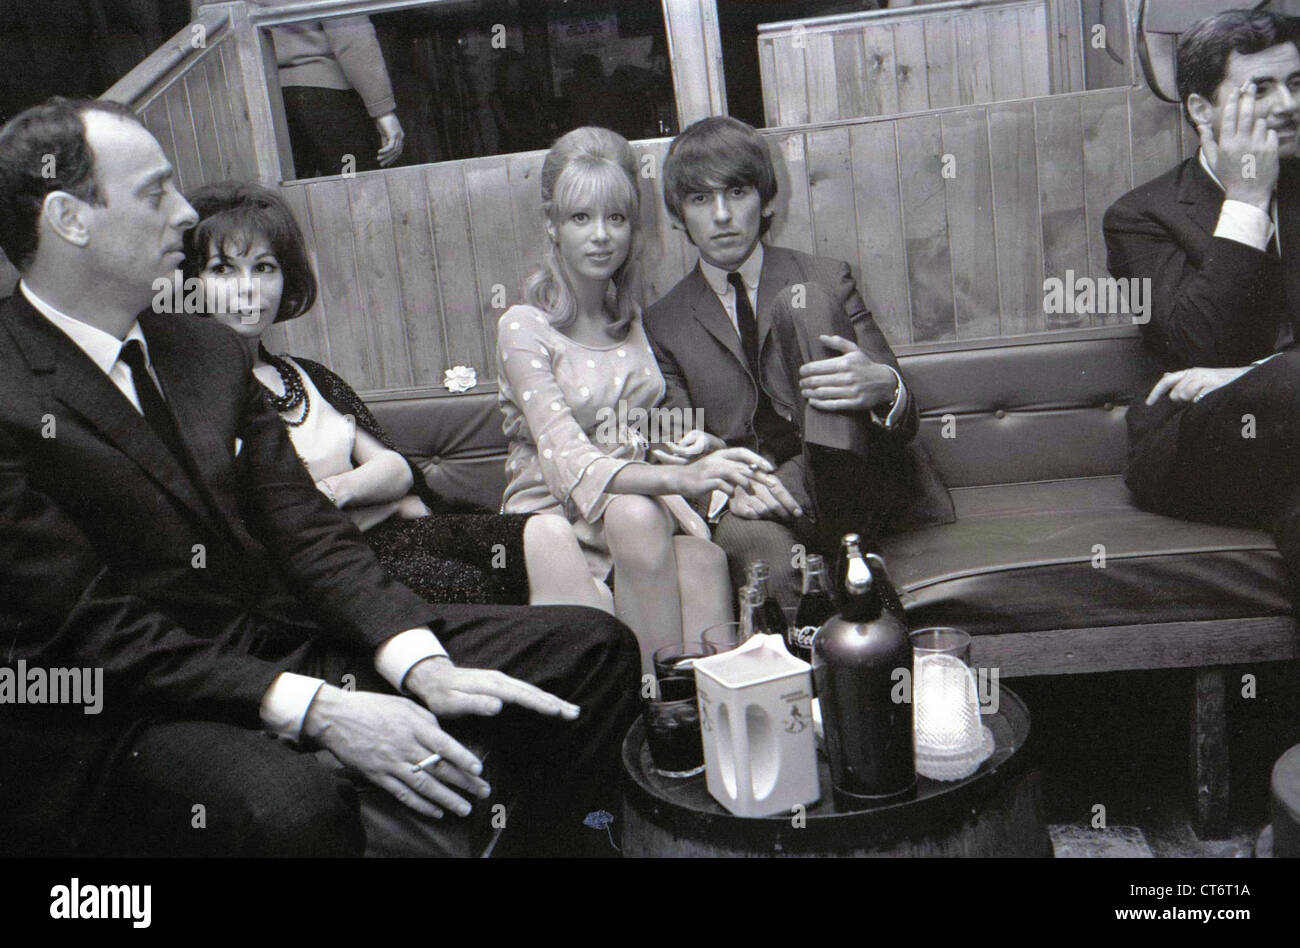 006130 - George Harrison & Pattie Boyd in the Saddle Room, London in 1964 Stock Photo